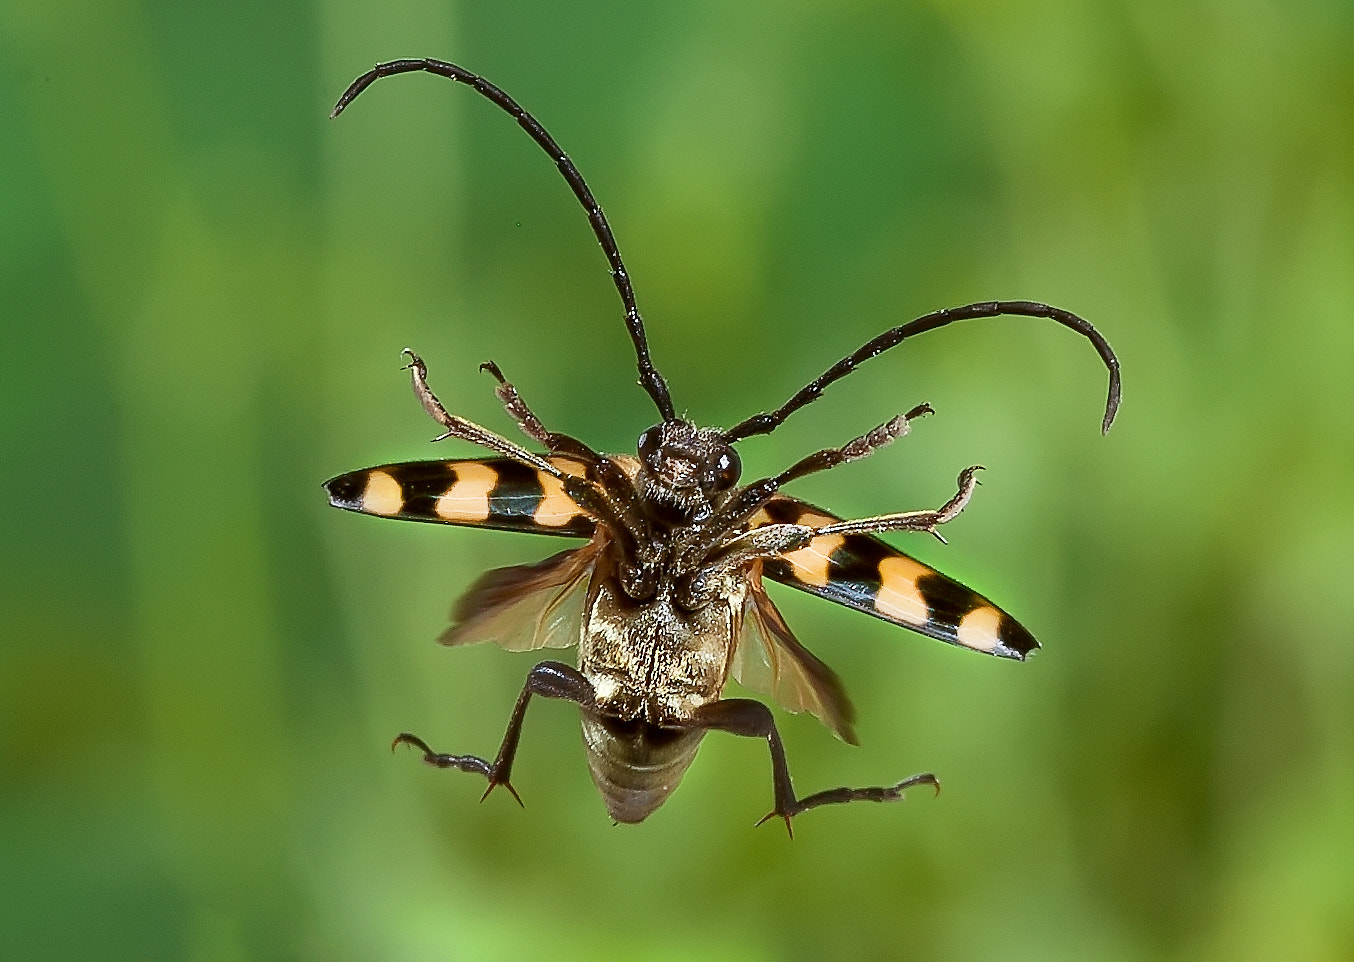 Photograph Longhorn Beetle in Flight by Dale Sutton on 500px